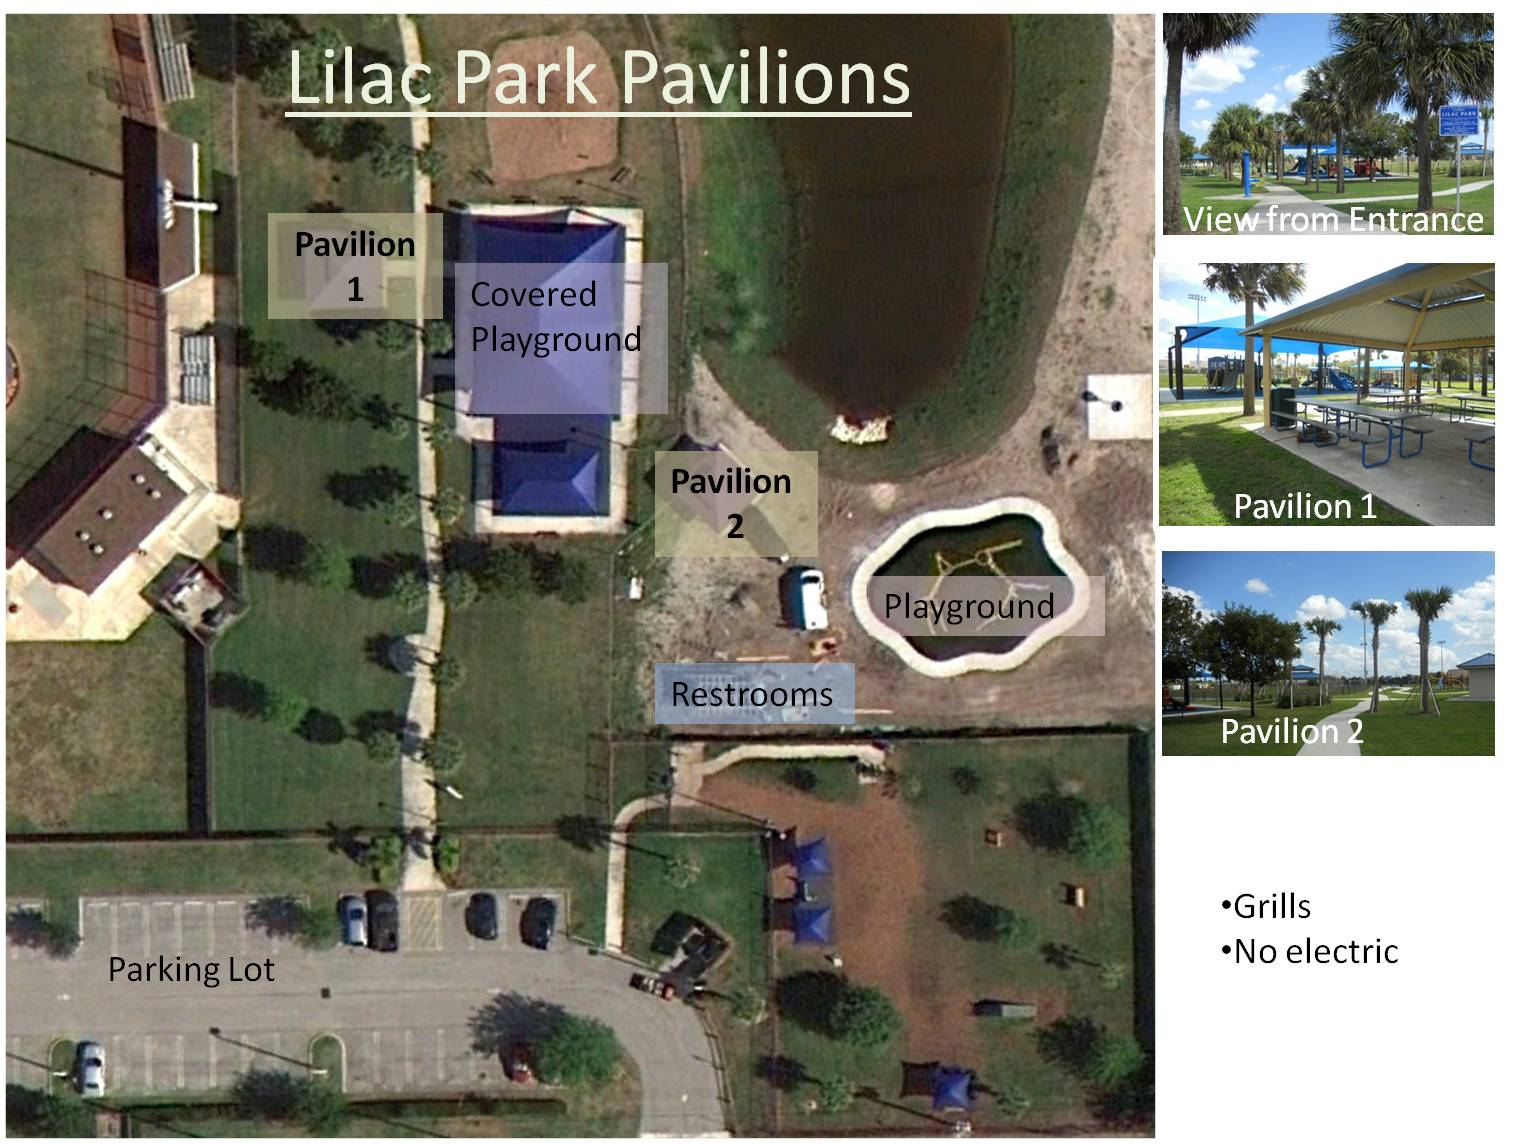 Arial map of the lilac park pavilions